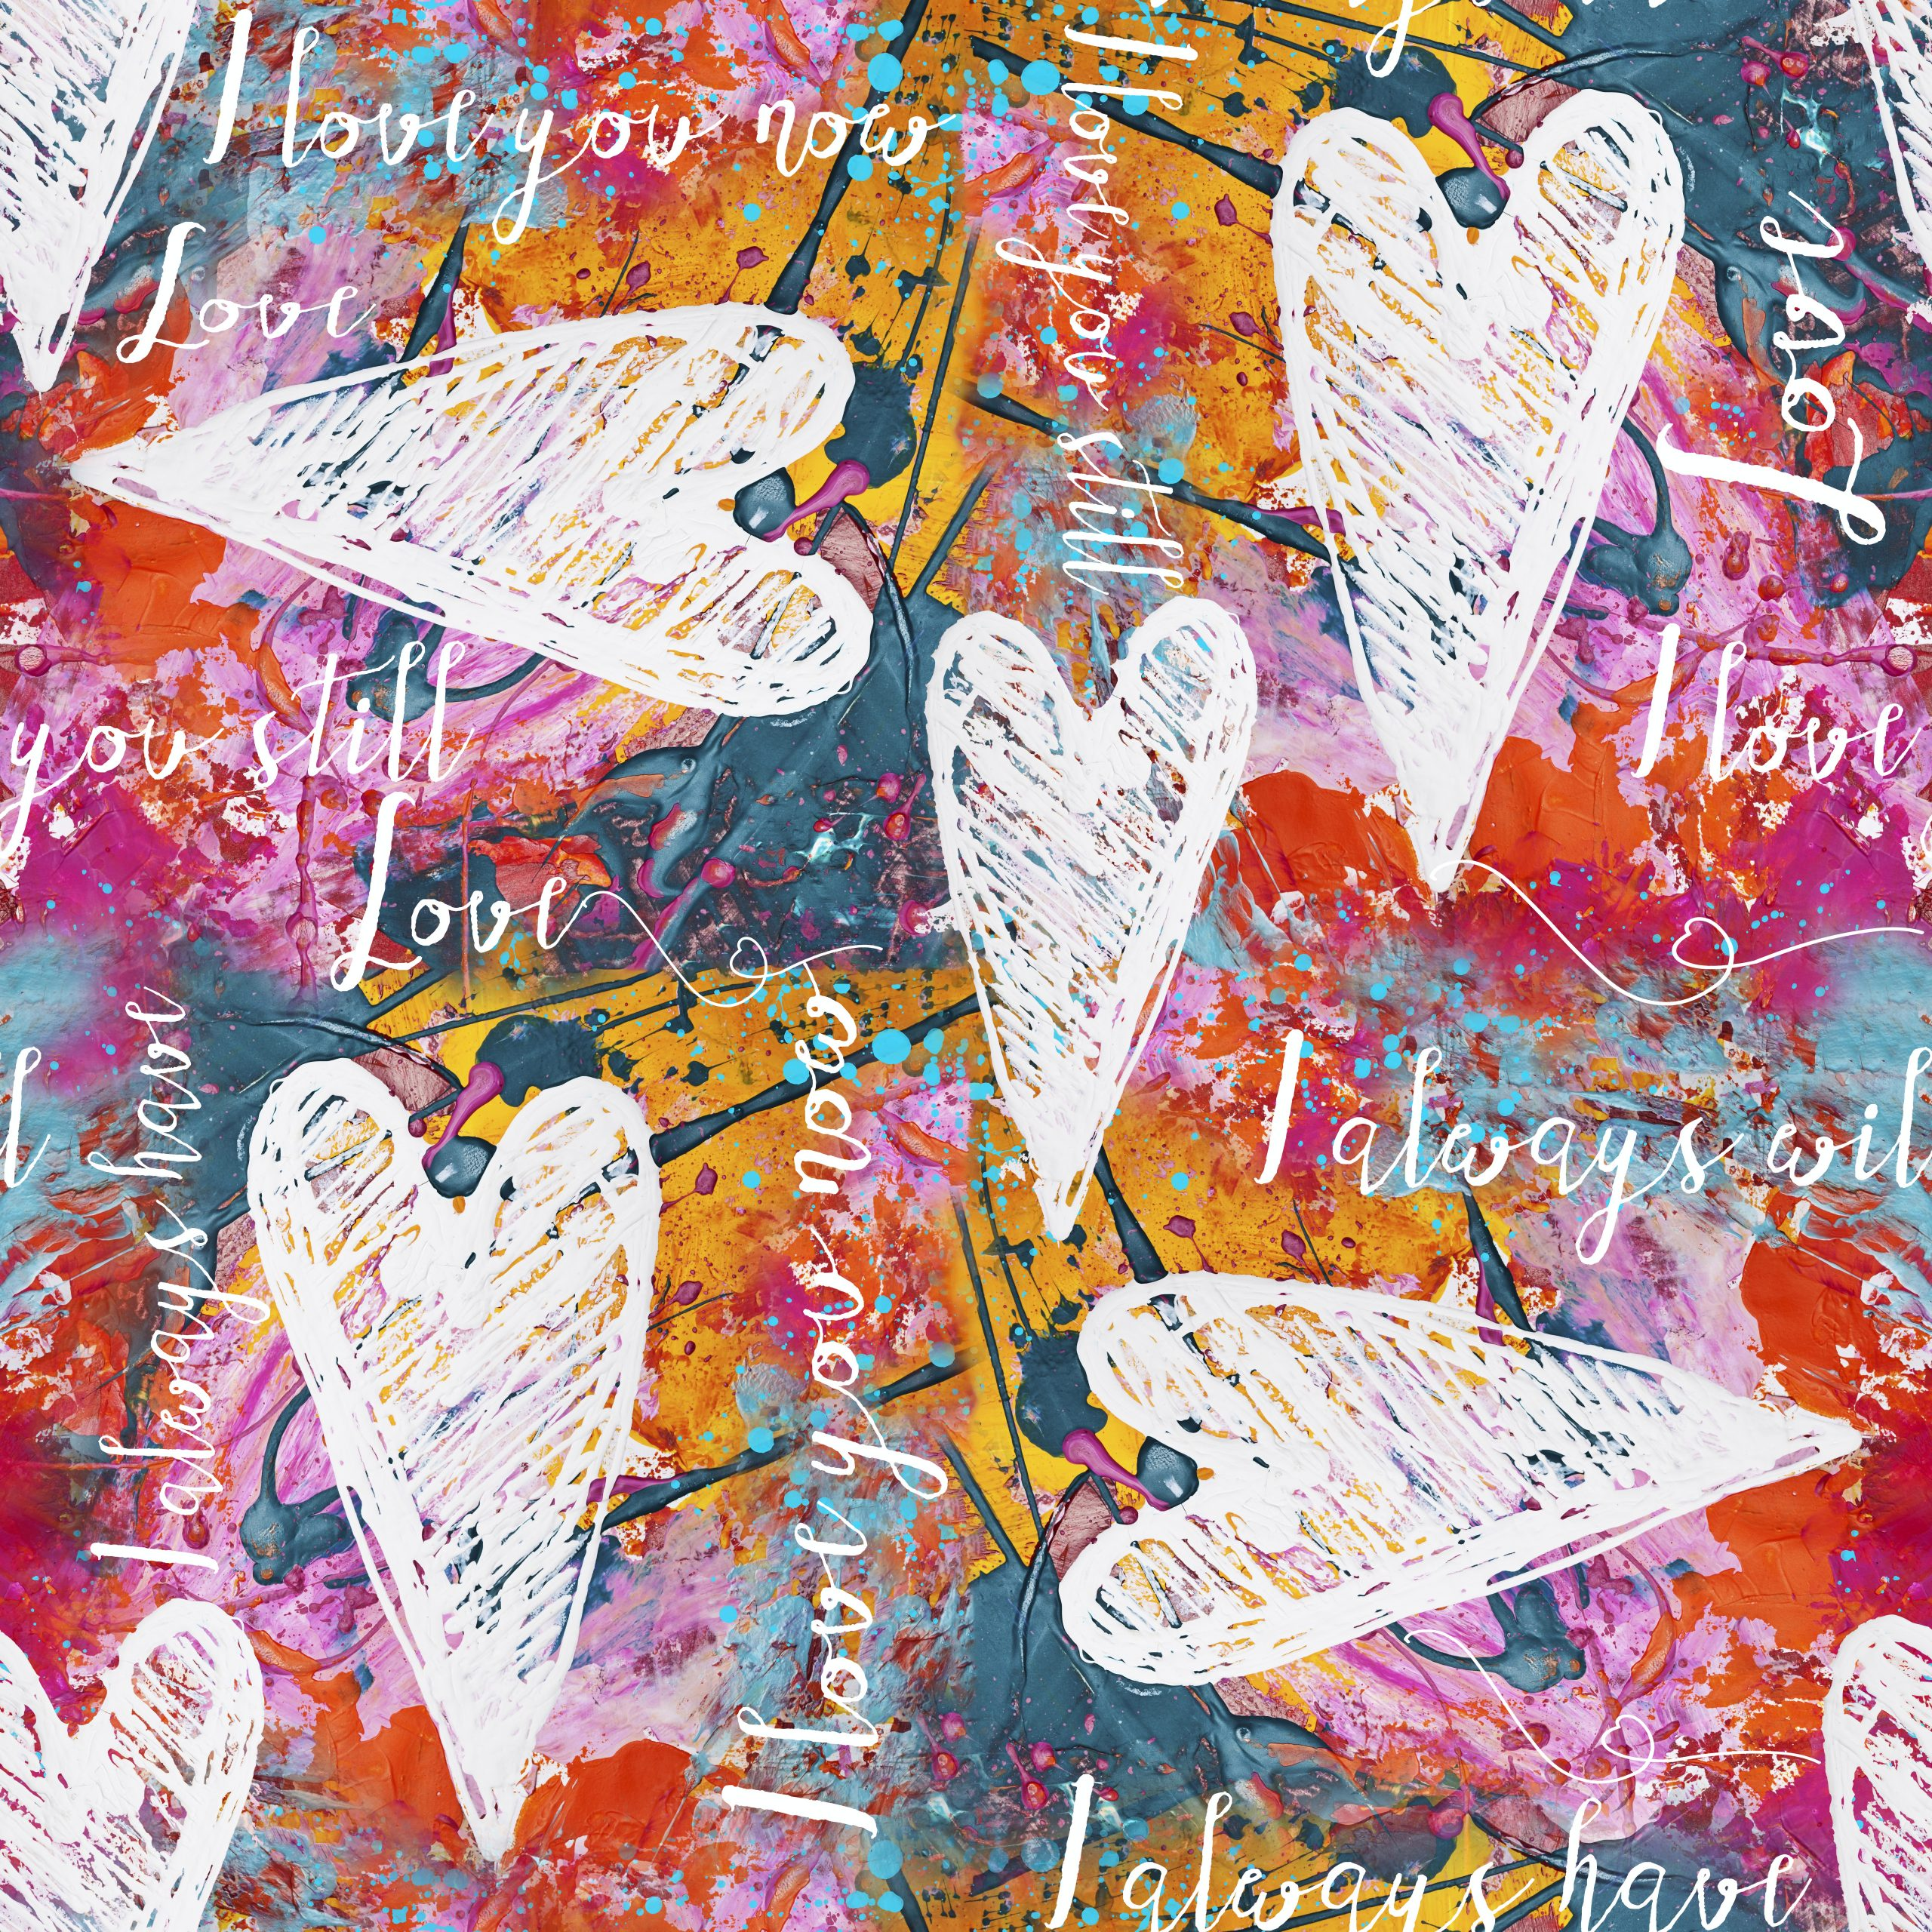 digital created heart and text seamless repeating pattern design, all used artwork is created and painted by myself